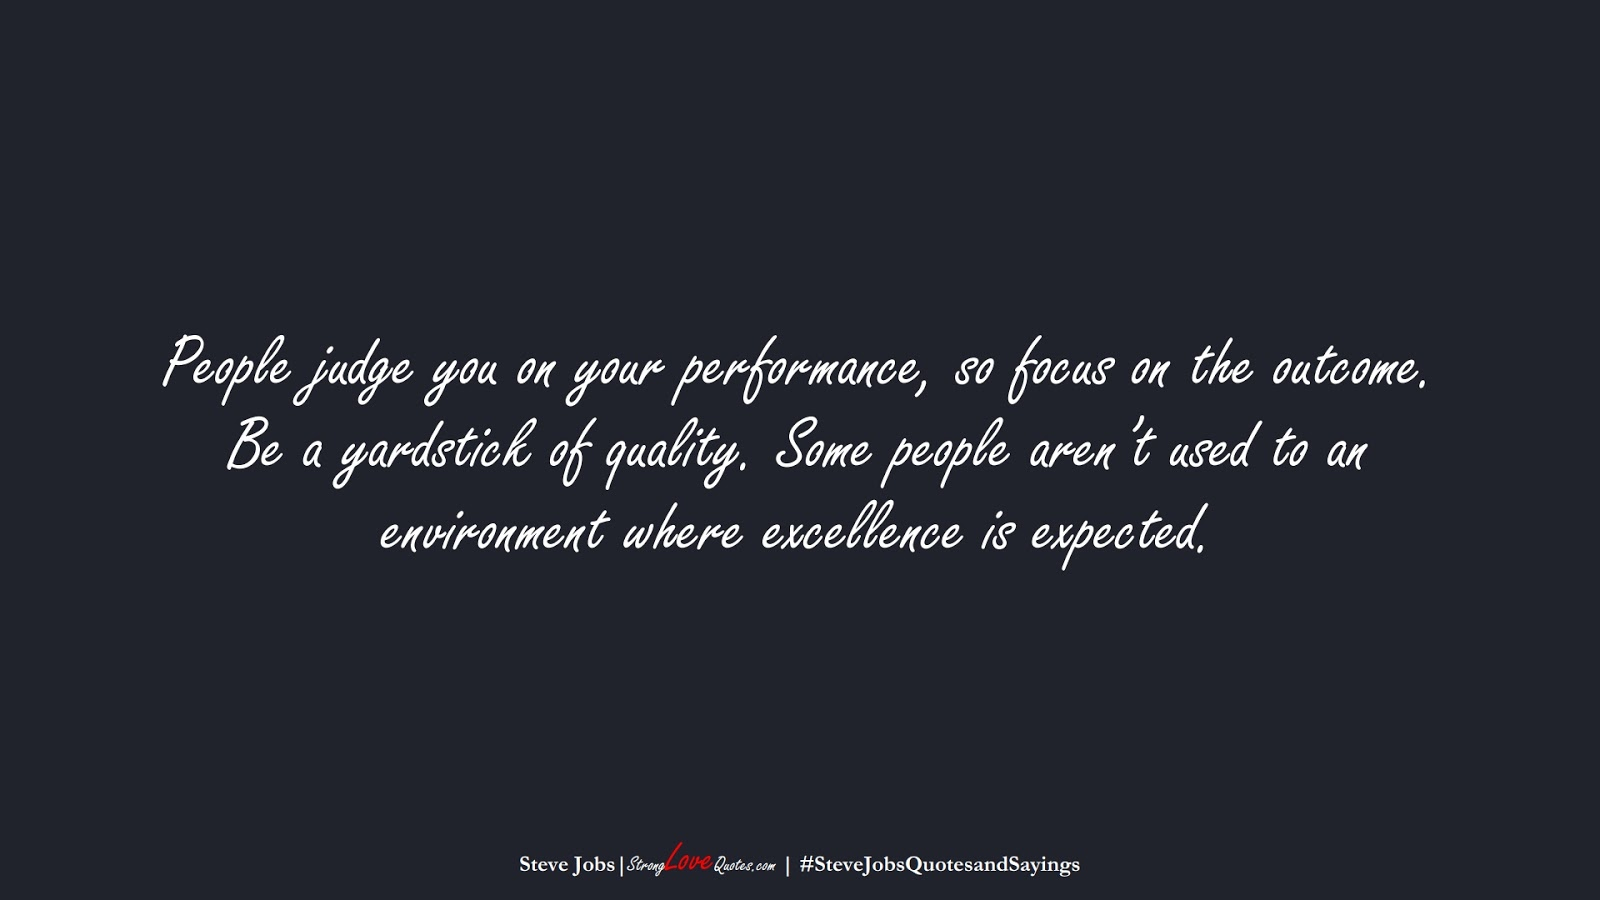 People judge you on your performance, so focus on the outcome. Be a yardstick of quality. Some people aren't used to an environment where excellence is expected. (Steve Jobs);  #SteveJobsQuotesandSayings